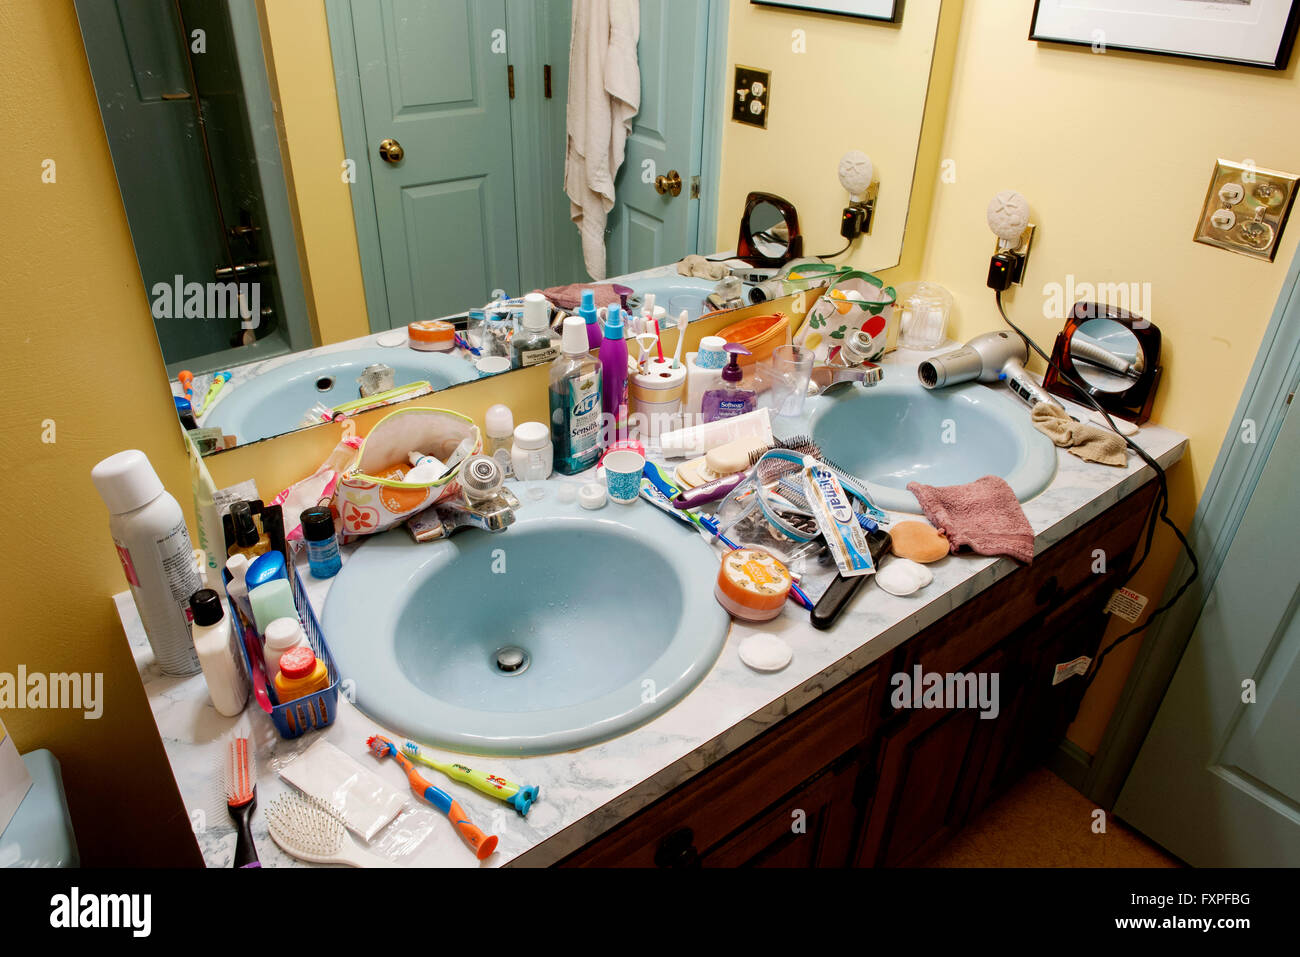 Bathroom Sinks Cluttered With Health And Beauty Products